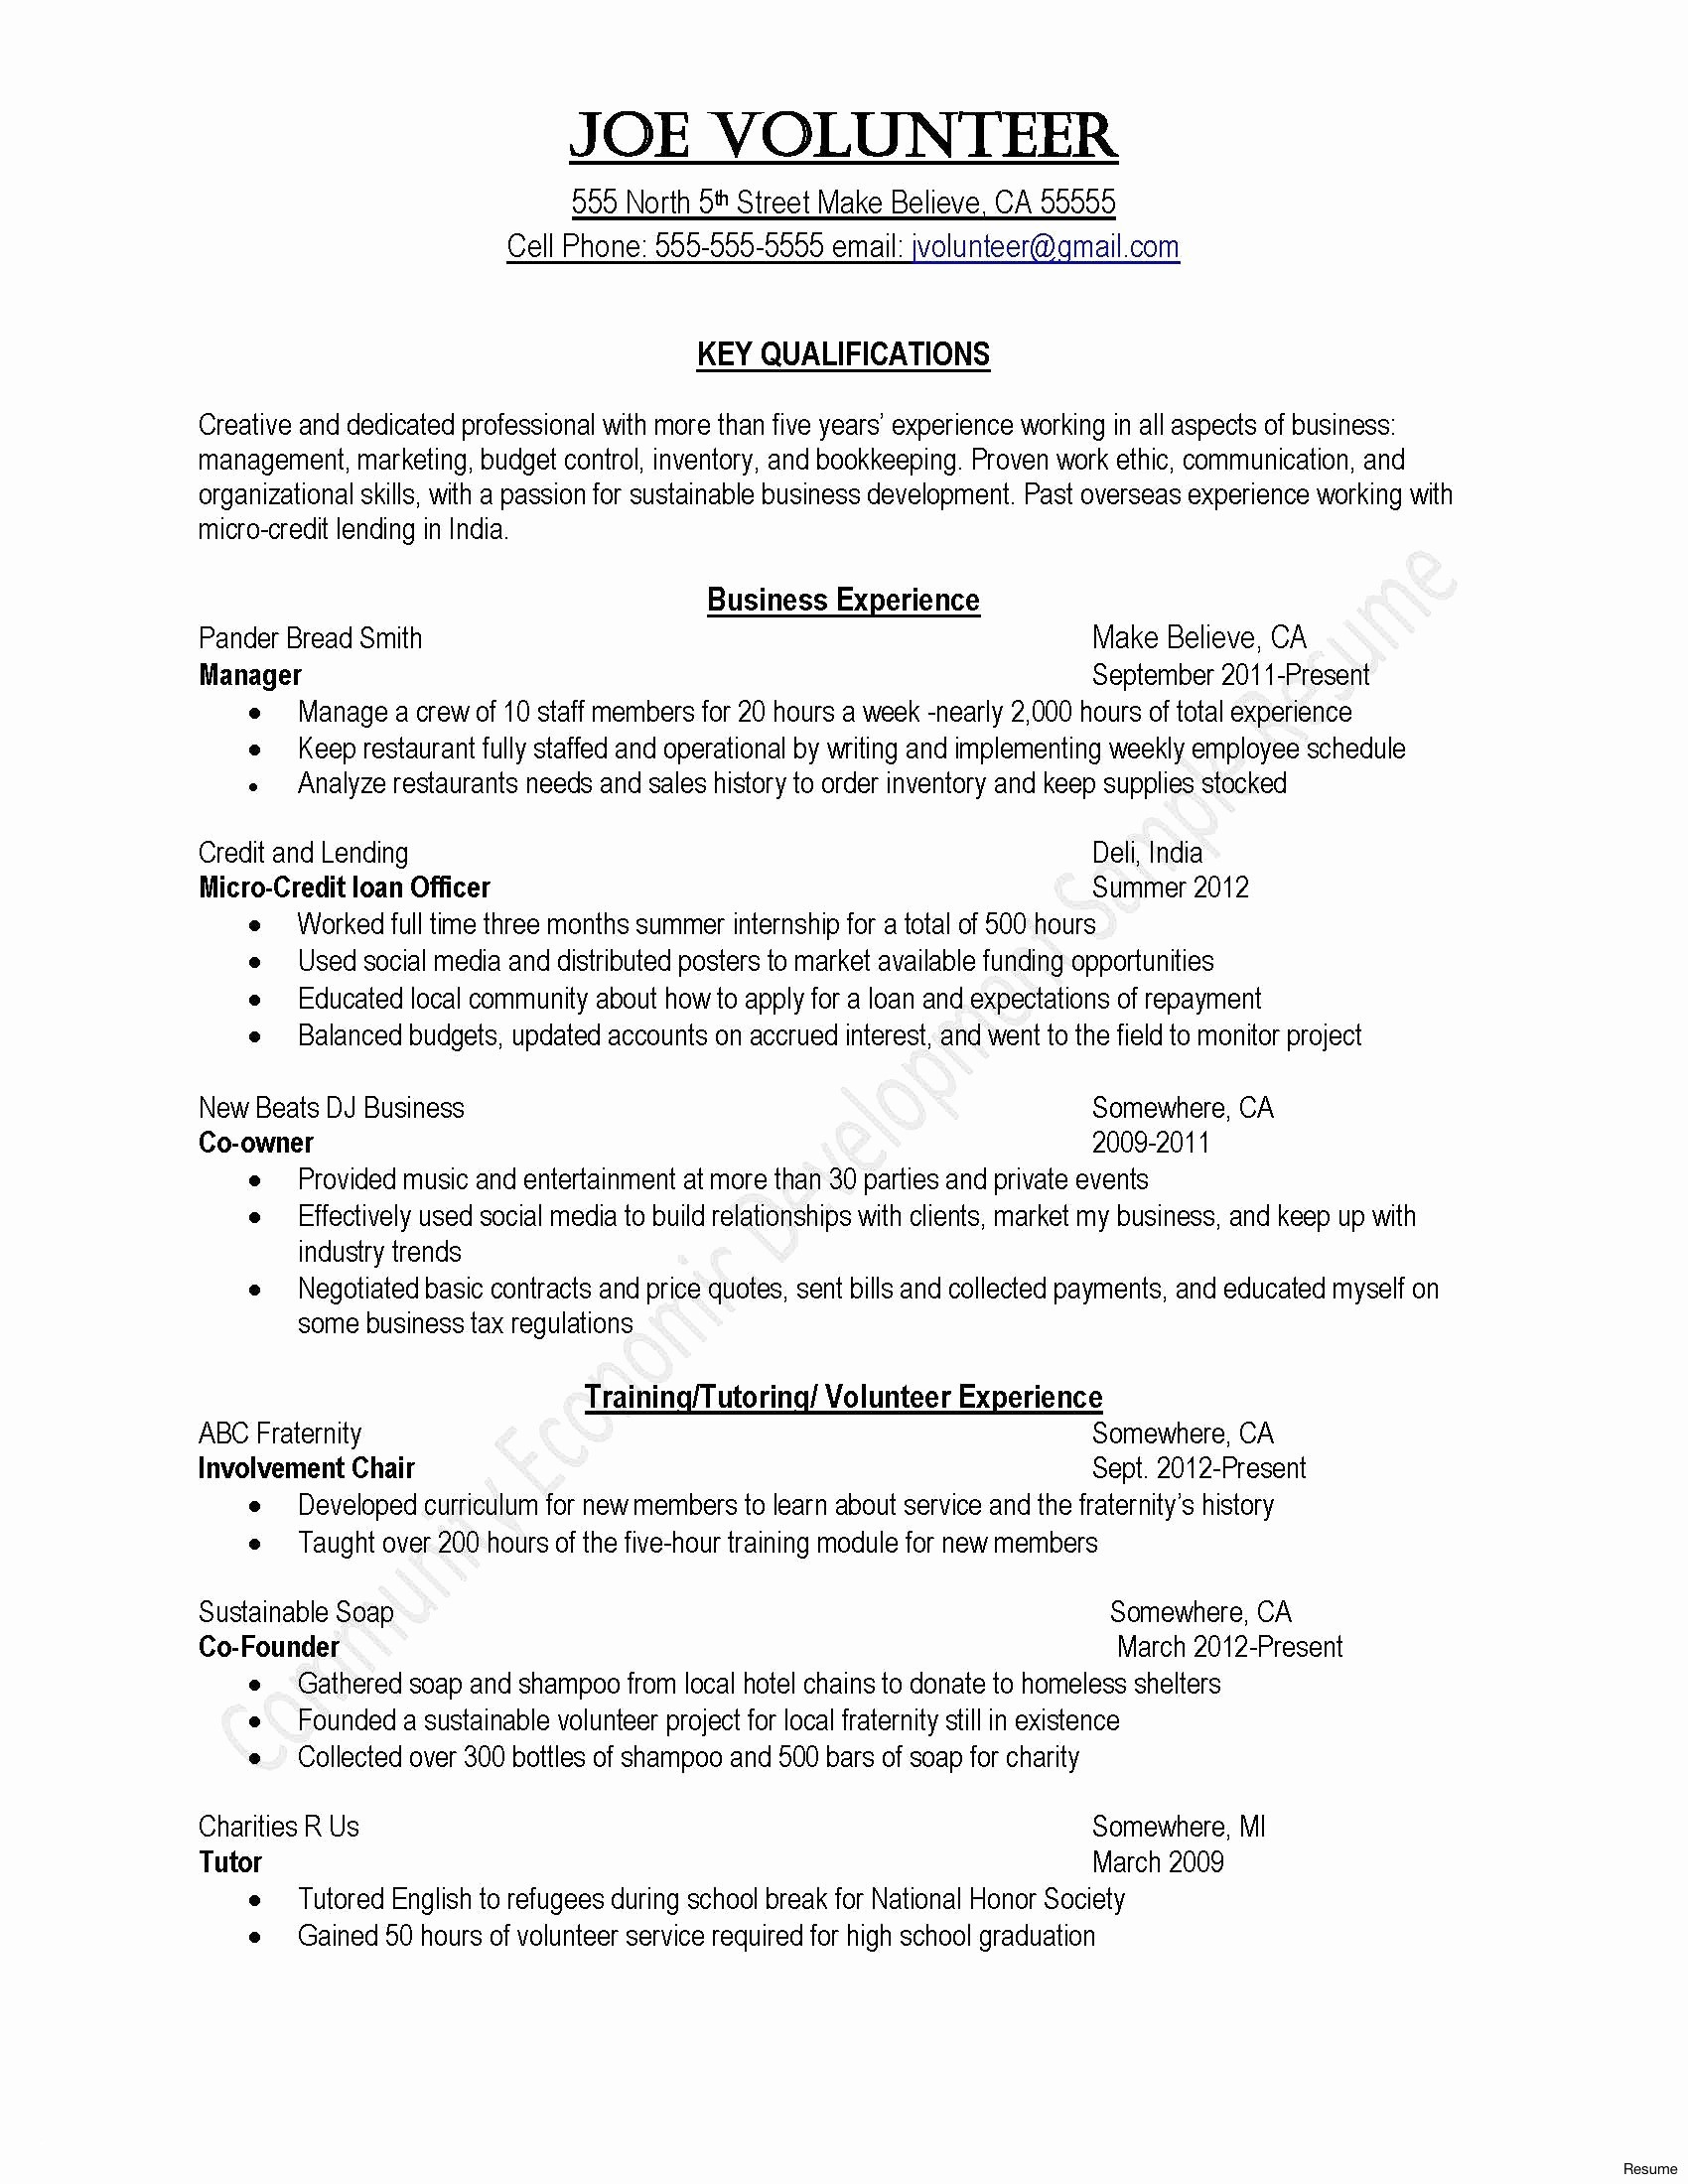 Resume Rabbit Free - Skill Based Resume Template Unique Experience Based Cv Template